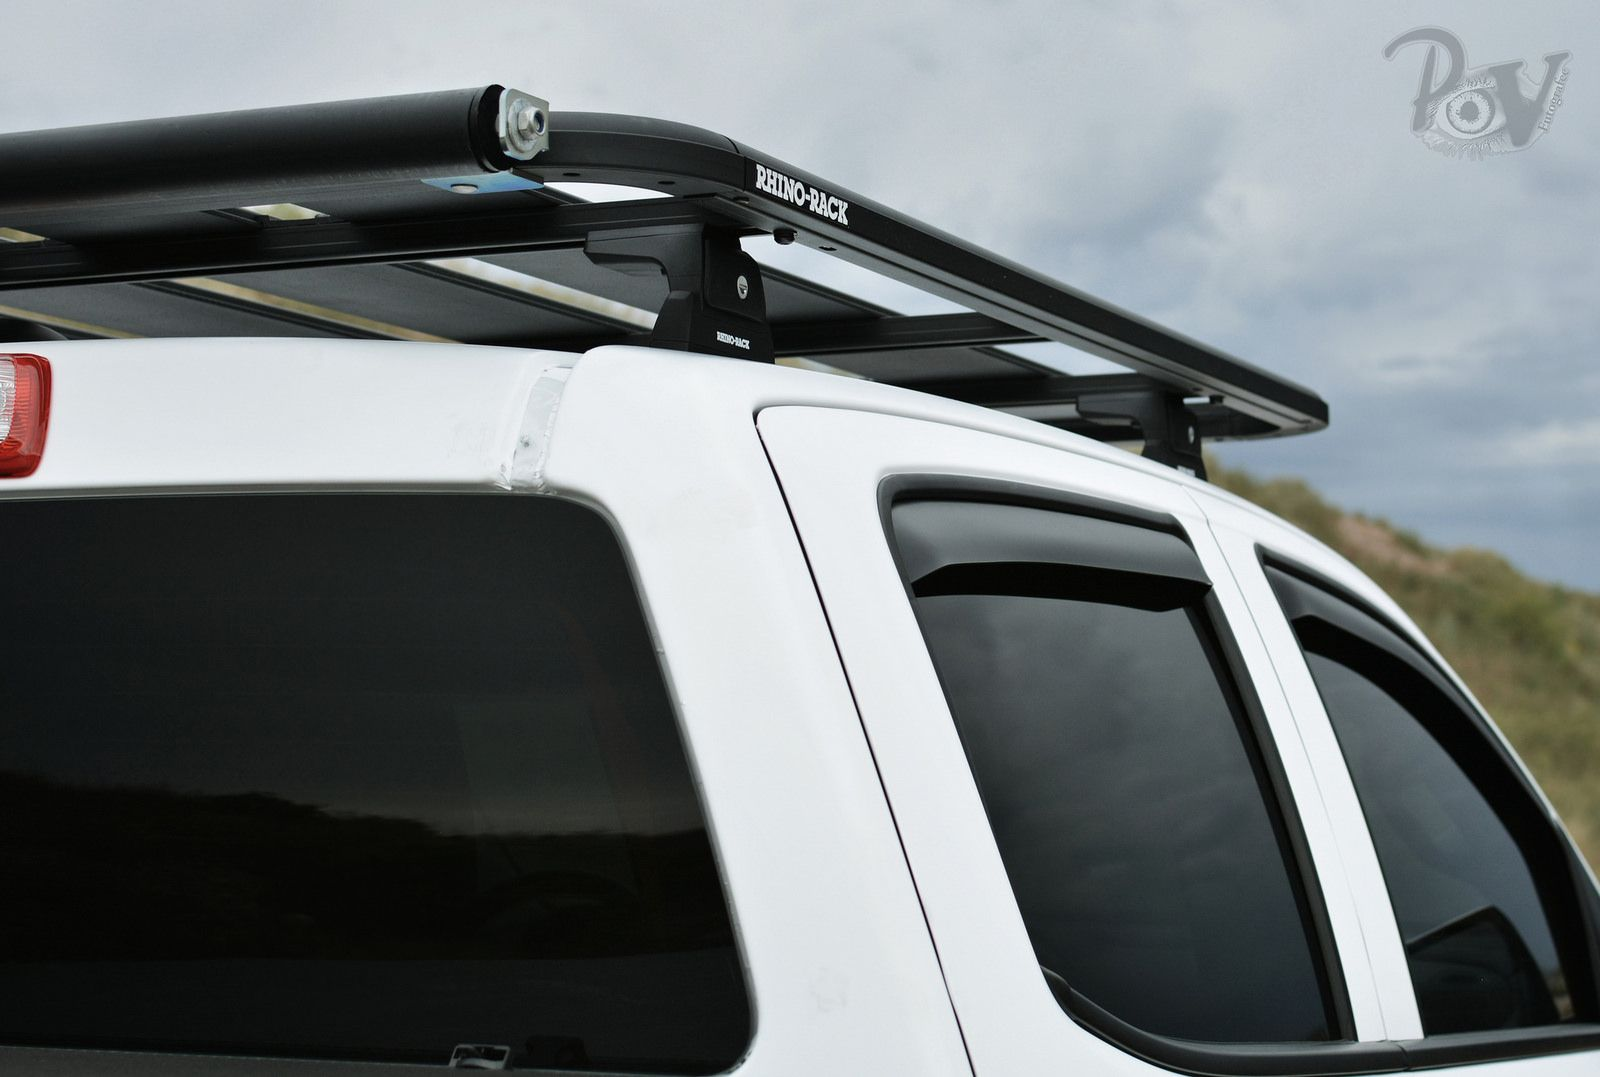 chevy colorado roof and bed rack RhinoRack Roof Rack